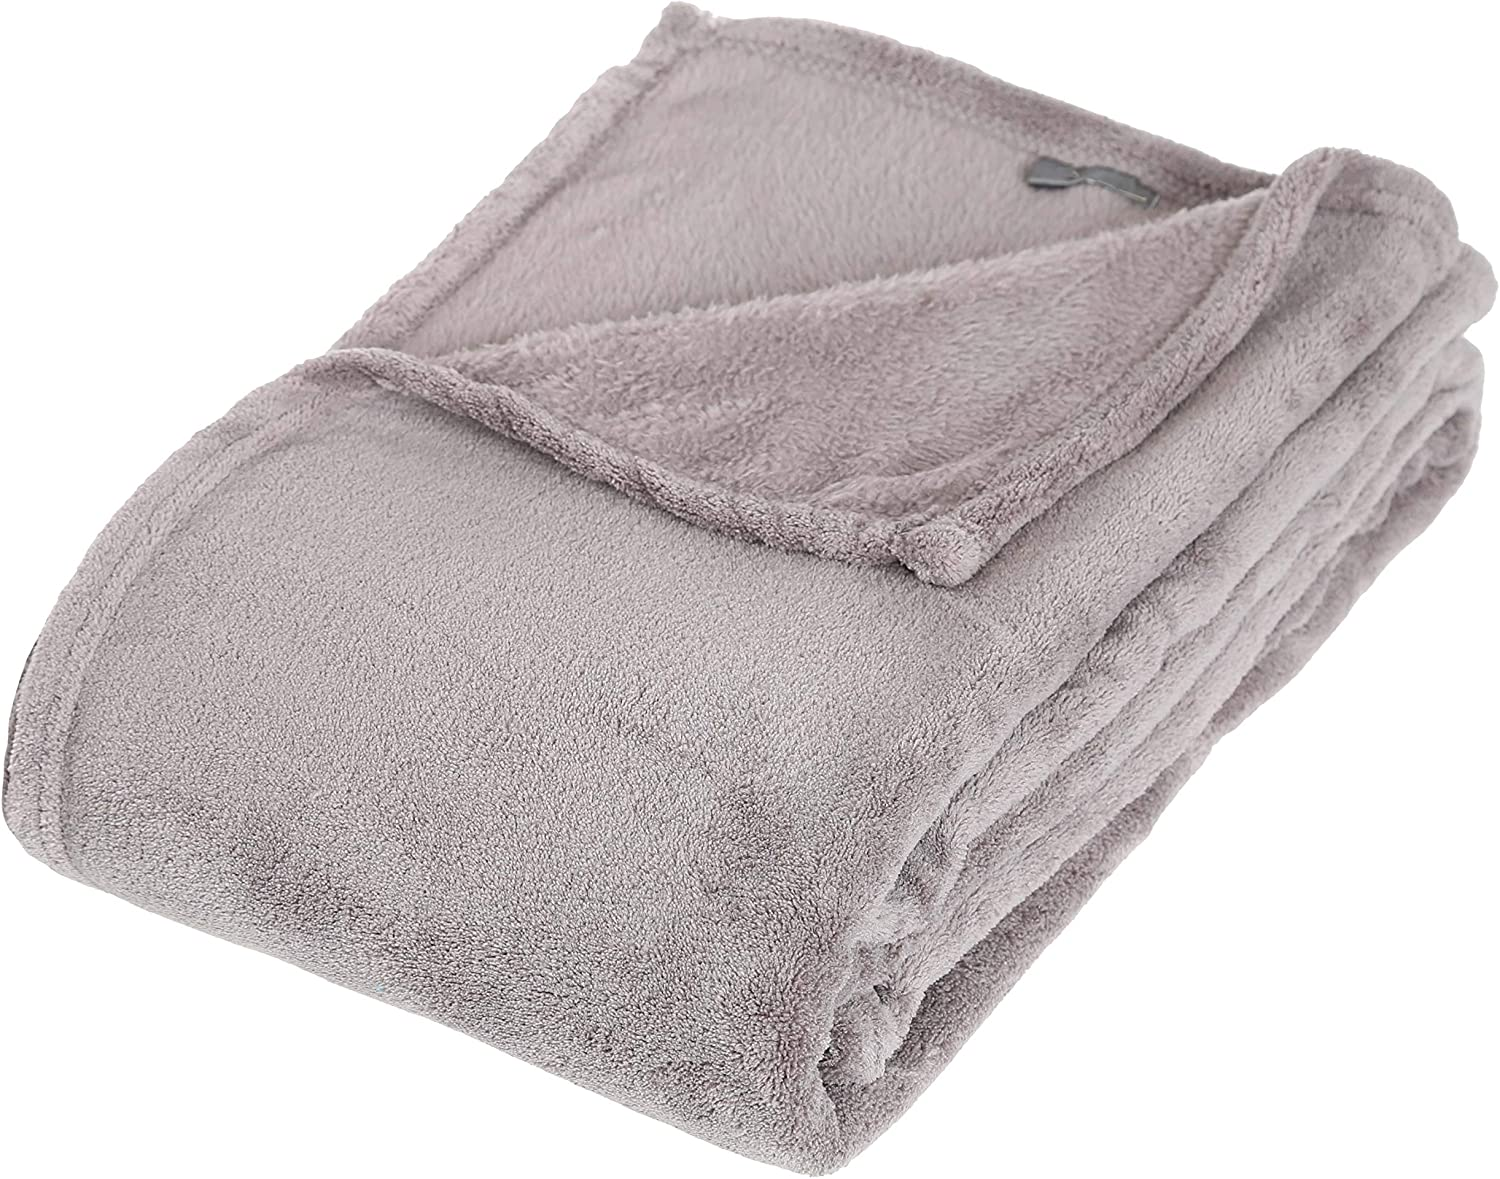 Taupe, Plaid Microfibre 125 x 150 cm Atmosphera Univers d/écor Plaid Microfibre 125 x 150 cm Atmosphera